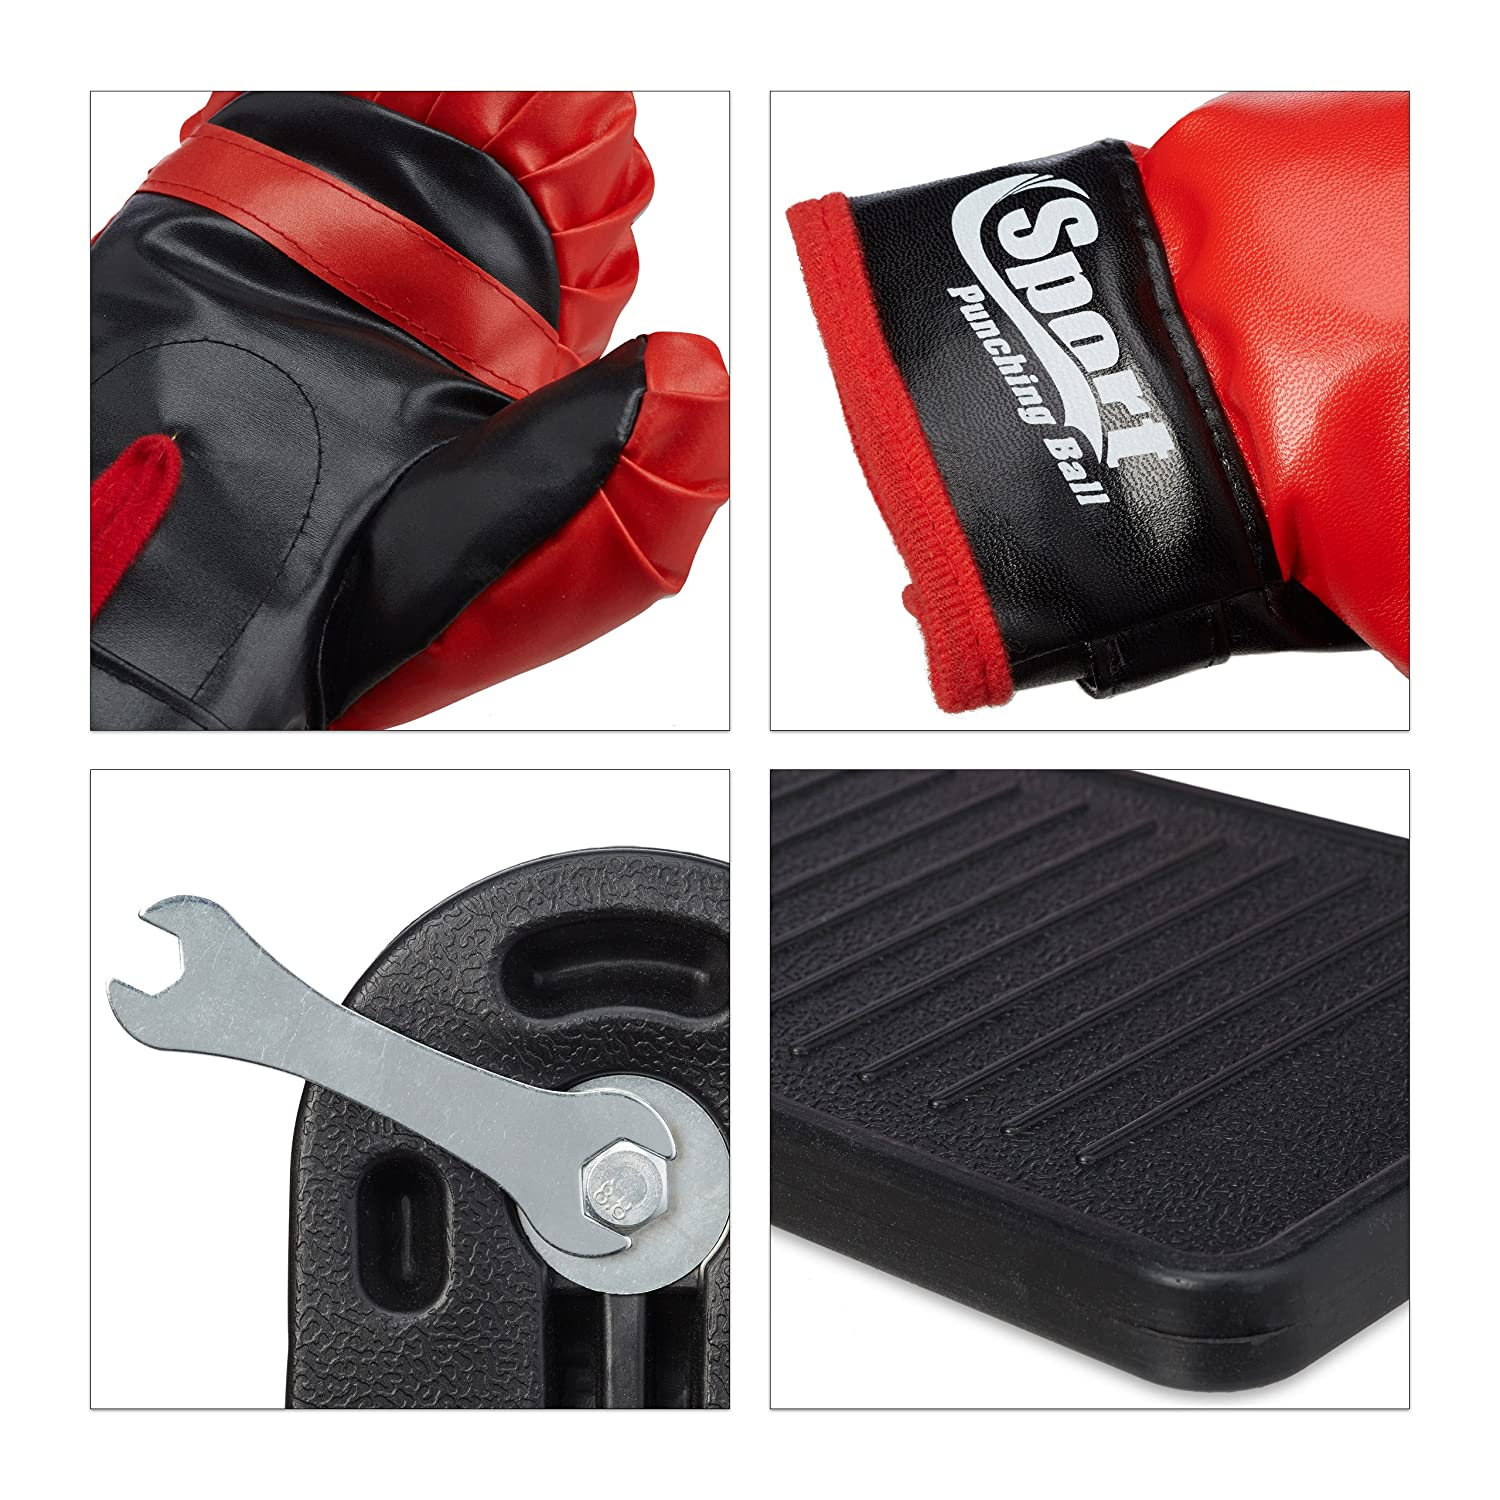 with Base Height Adjustable Relaxdays Punching Ball Set Children Pump Boxing Gloves black-red HBD: 102 x 15 x 52 cm